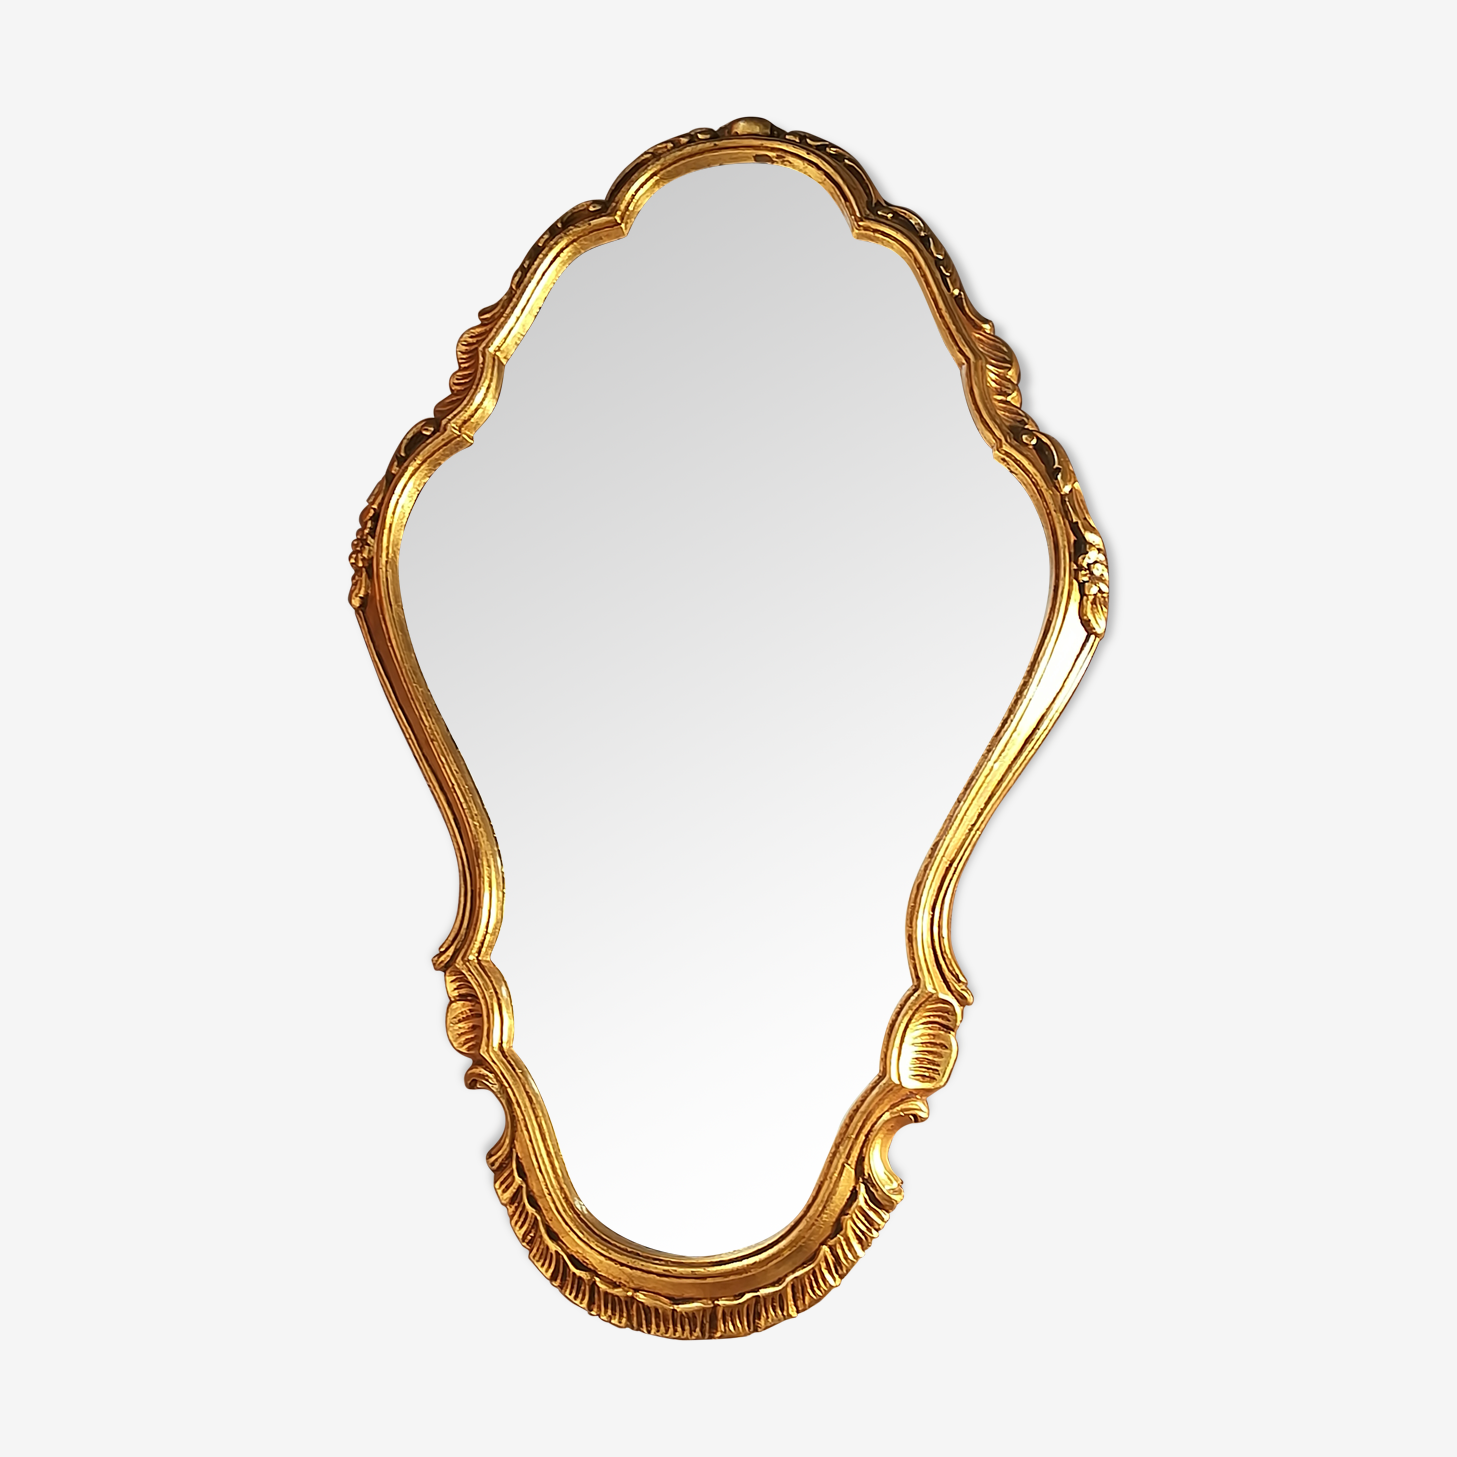 Wood golden mirror 65 x 40 cm